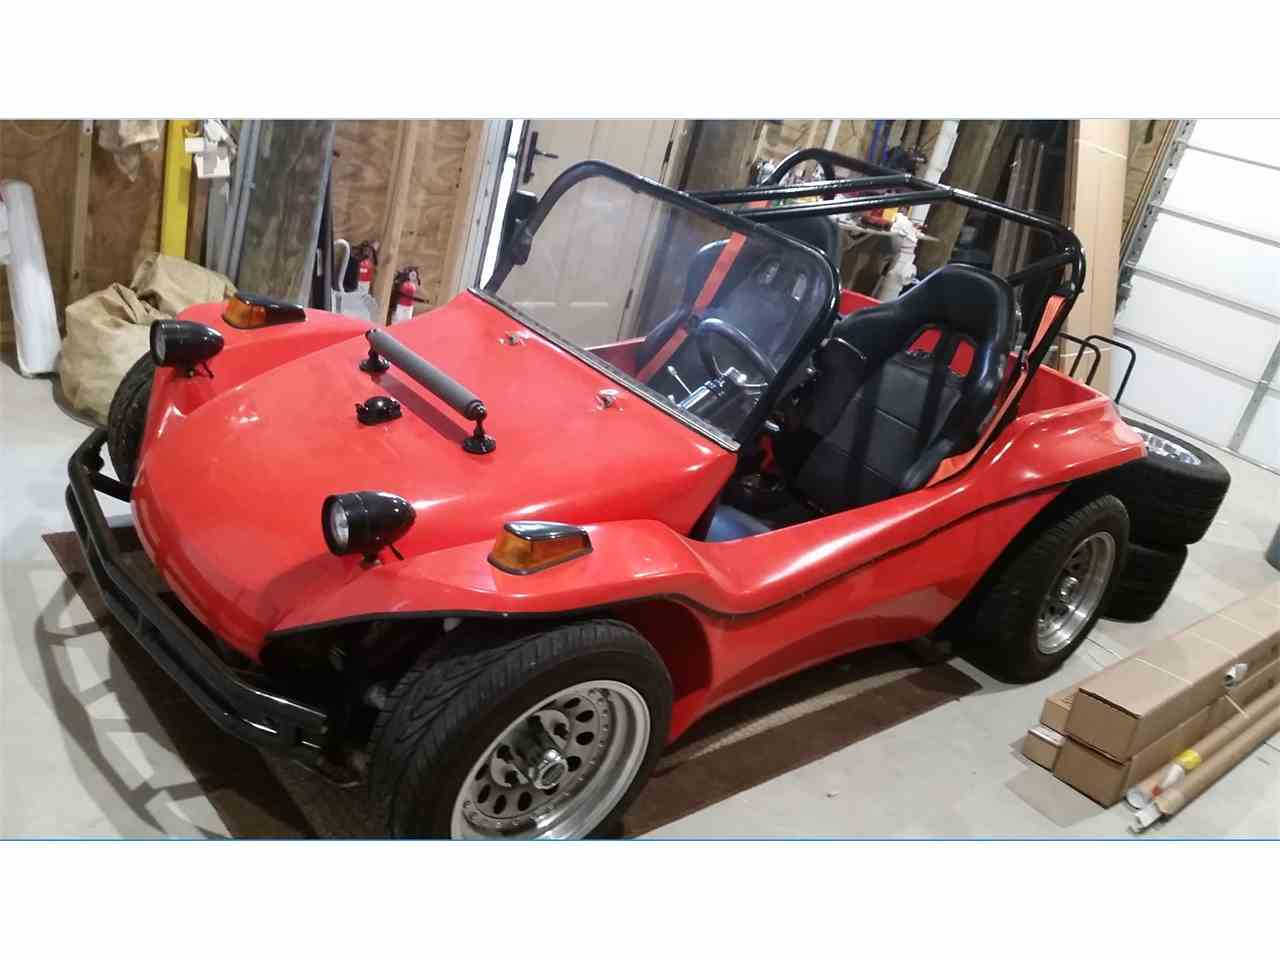 Vw Dune Buggy : Volkswagen dune buggy for sale classiccars cc